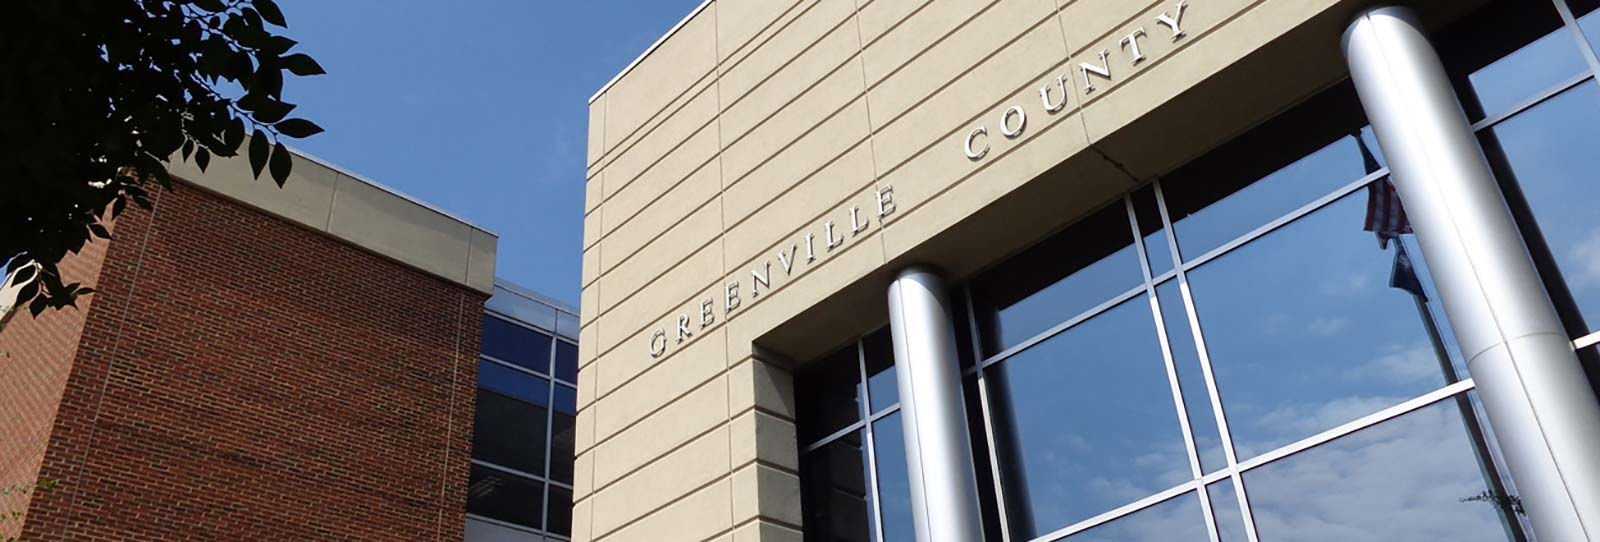 greenville-sc-personal-injury-attorney-lawyer-greenville-county-courthouse